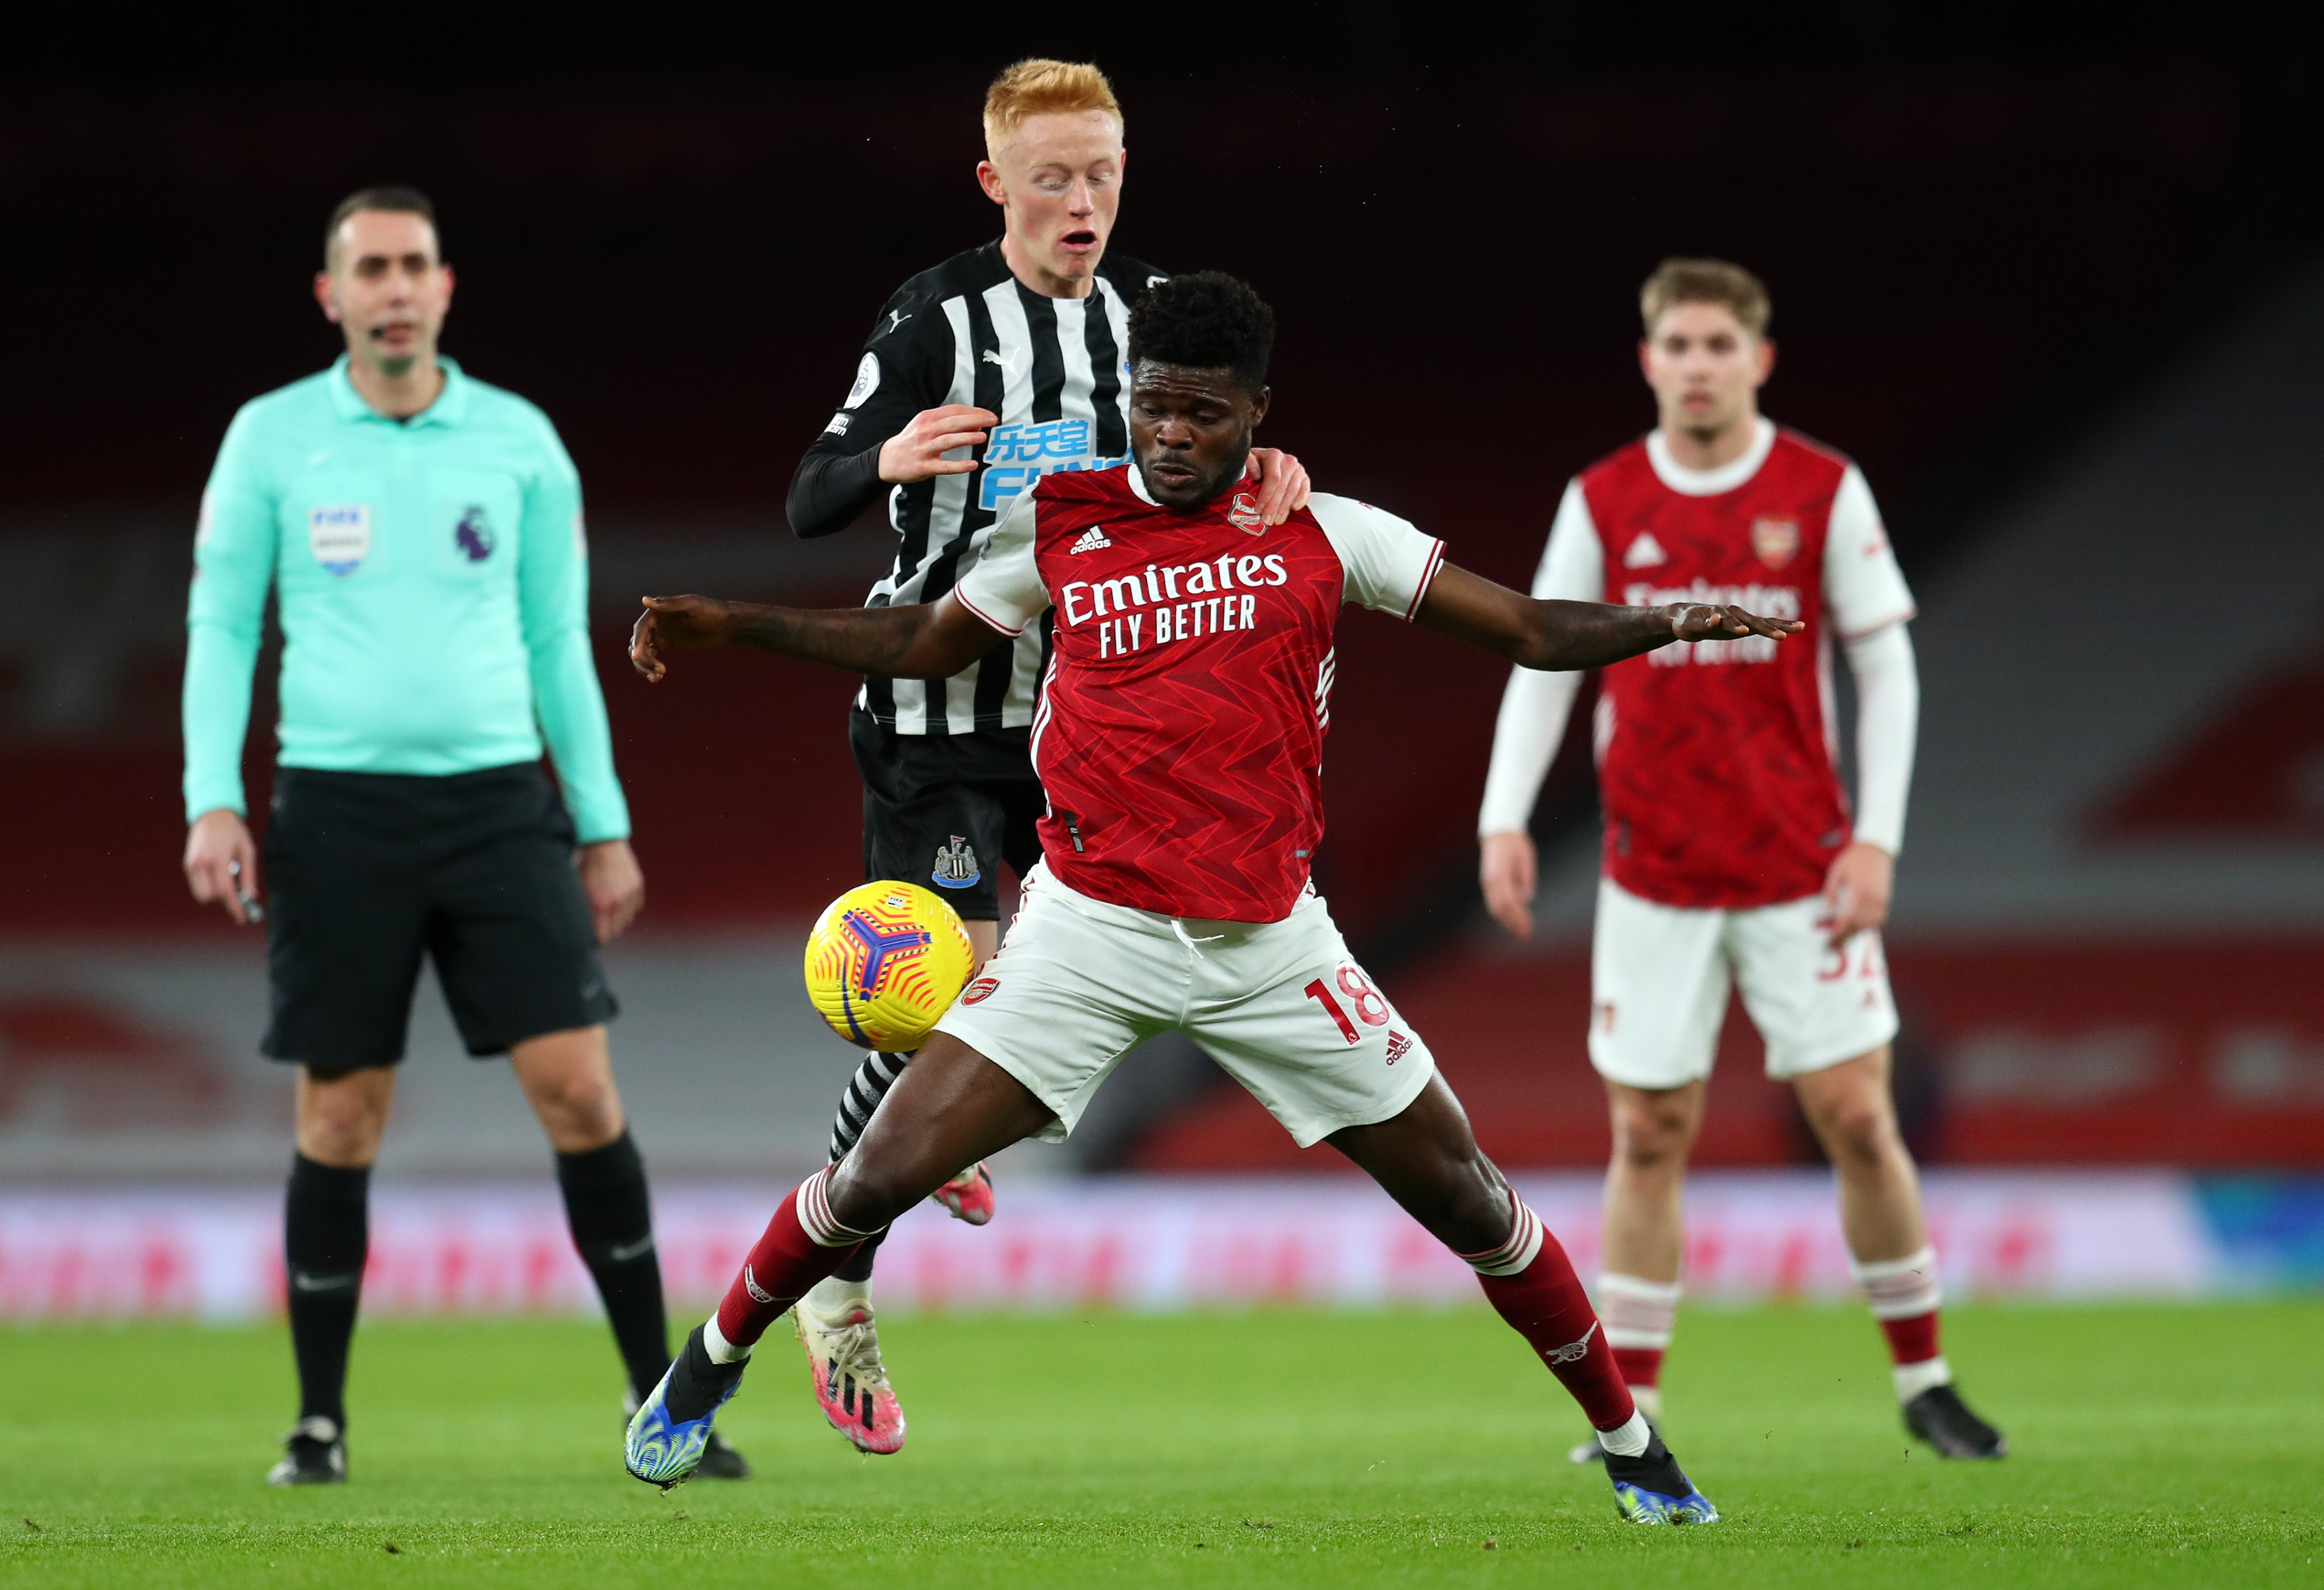 Thomas Partey stands firm to shield the ball away from Matty Longstaff